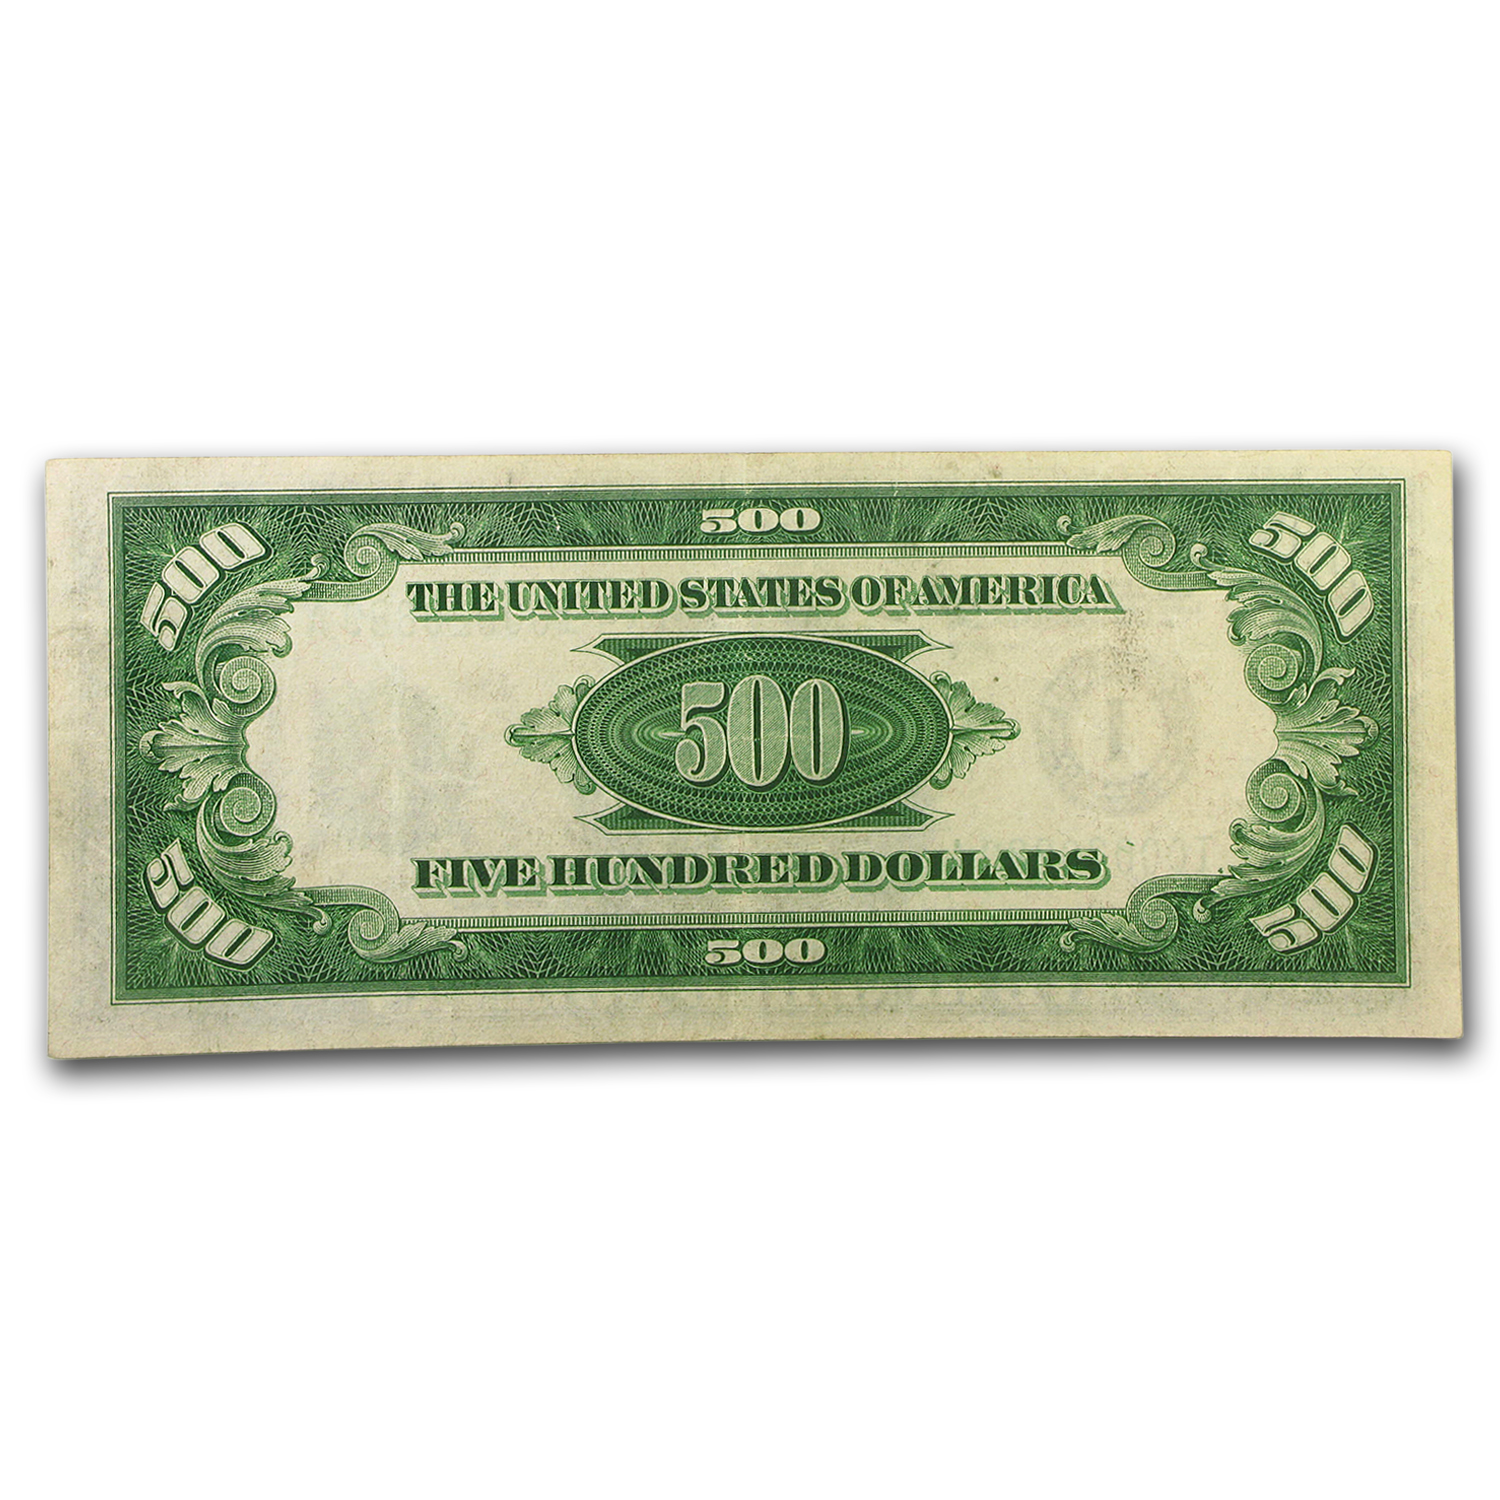 1934-A (I-Minneapolis) $500 FRN AU-55